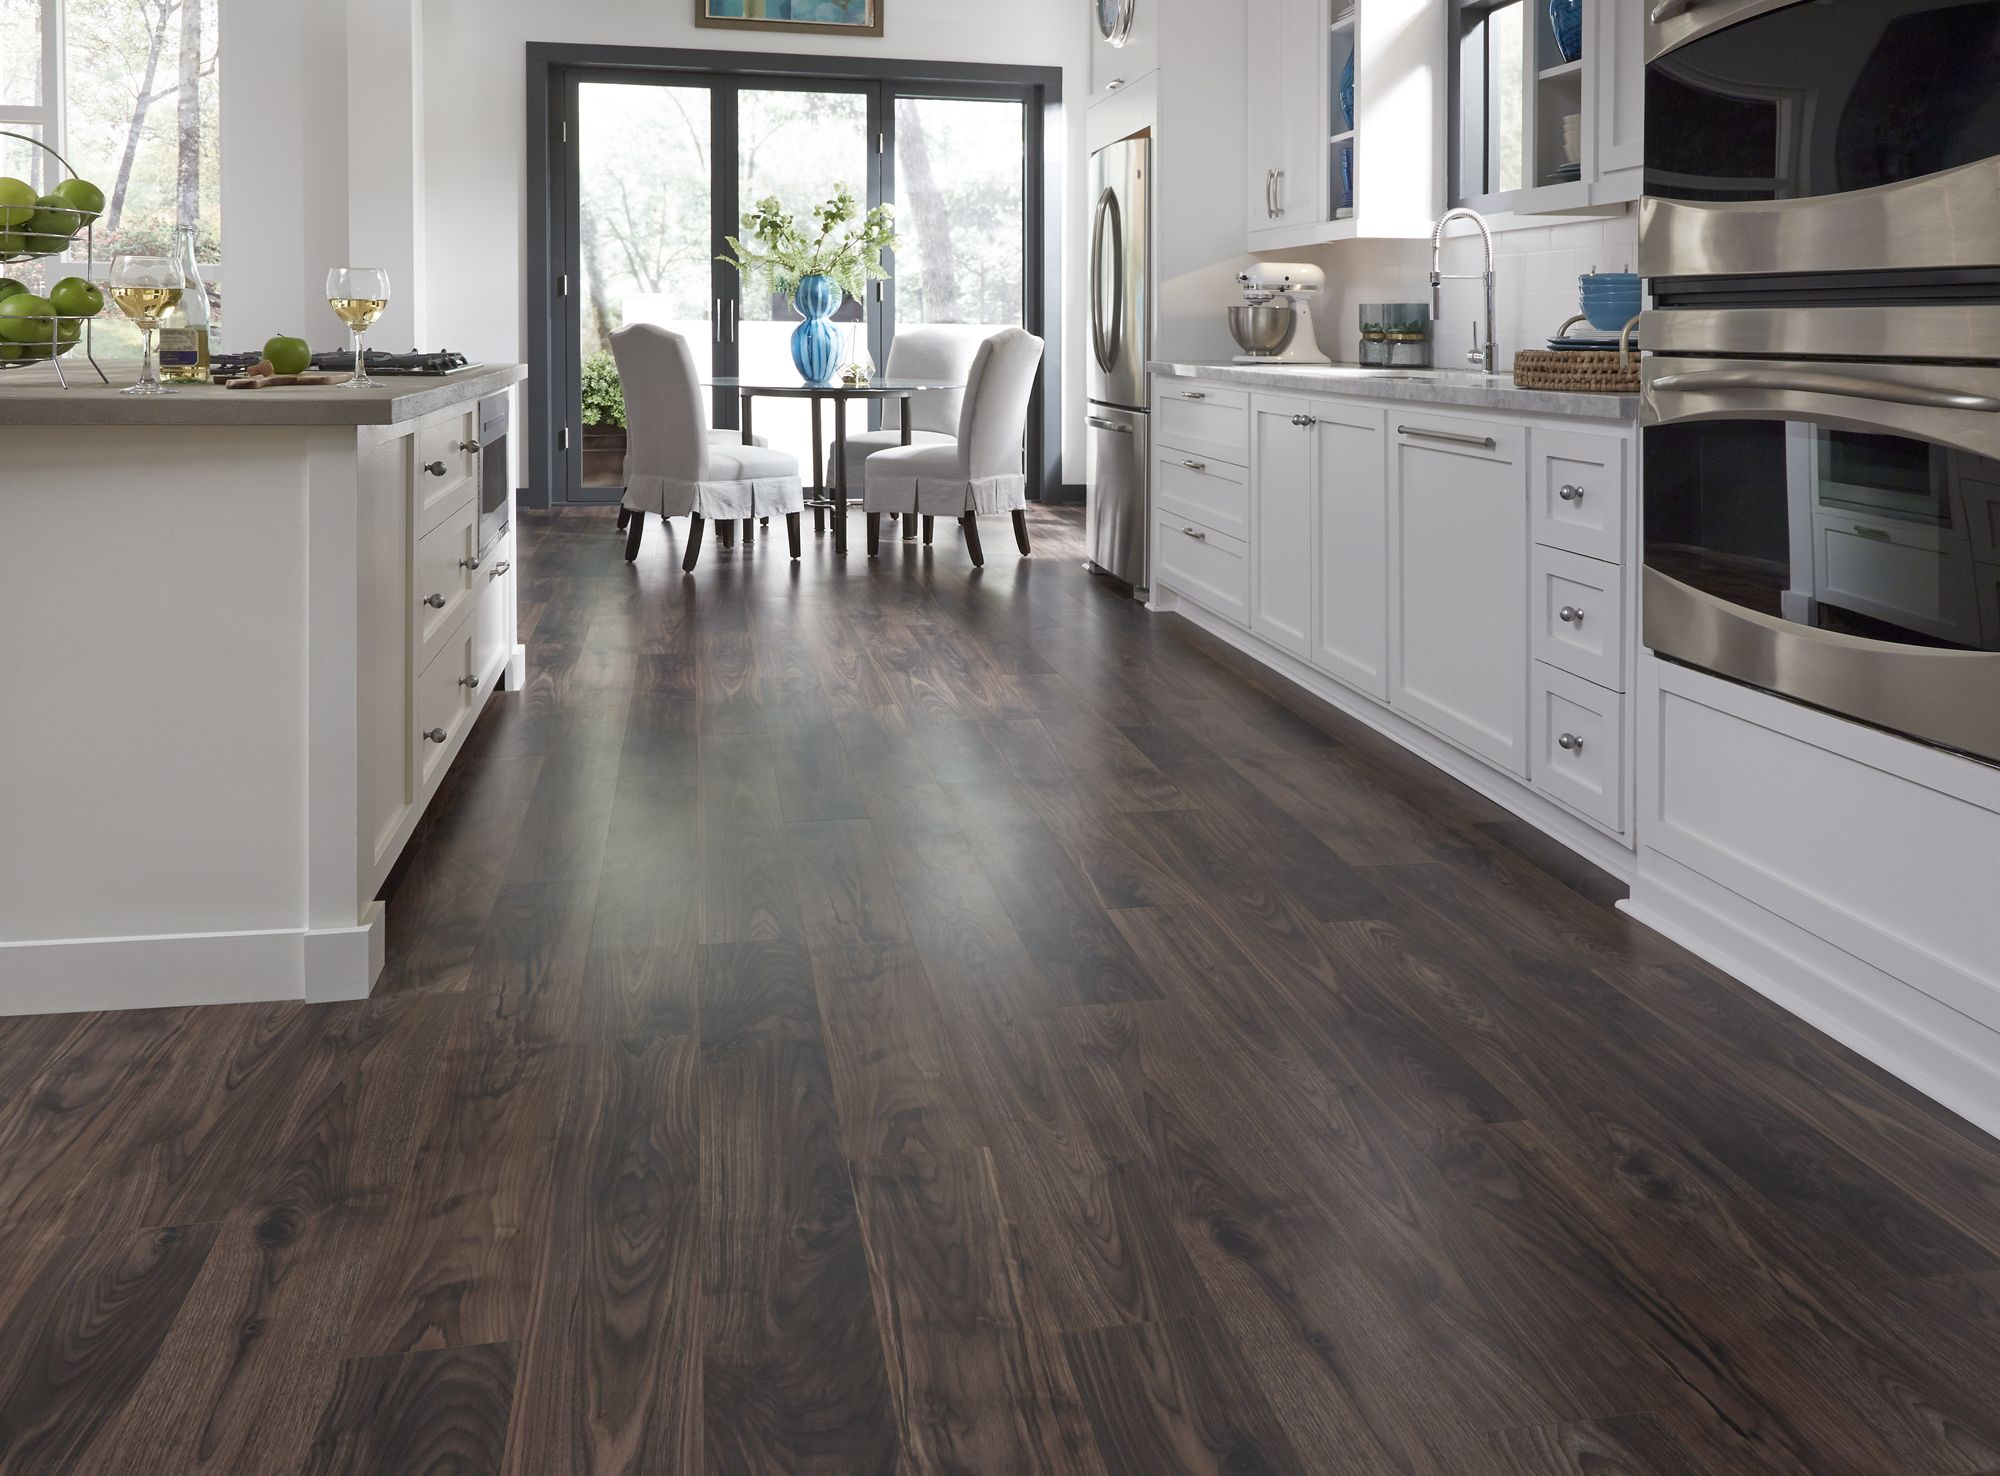 Waterproof kid proof pet proof felsen click ceramic plank is wood look tile that has no grout lines click ceramic plank ccp by lumber liquidators it is the perfect blend of beauty and longevity my floors post dailygadgetfo Choice Image